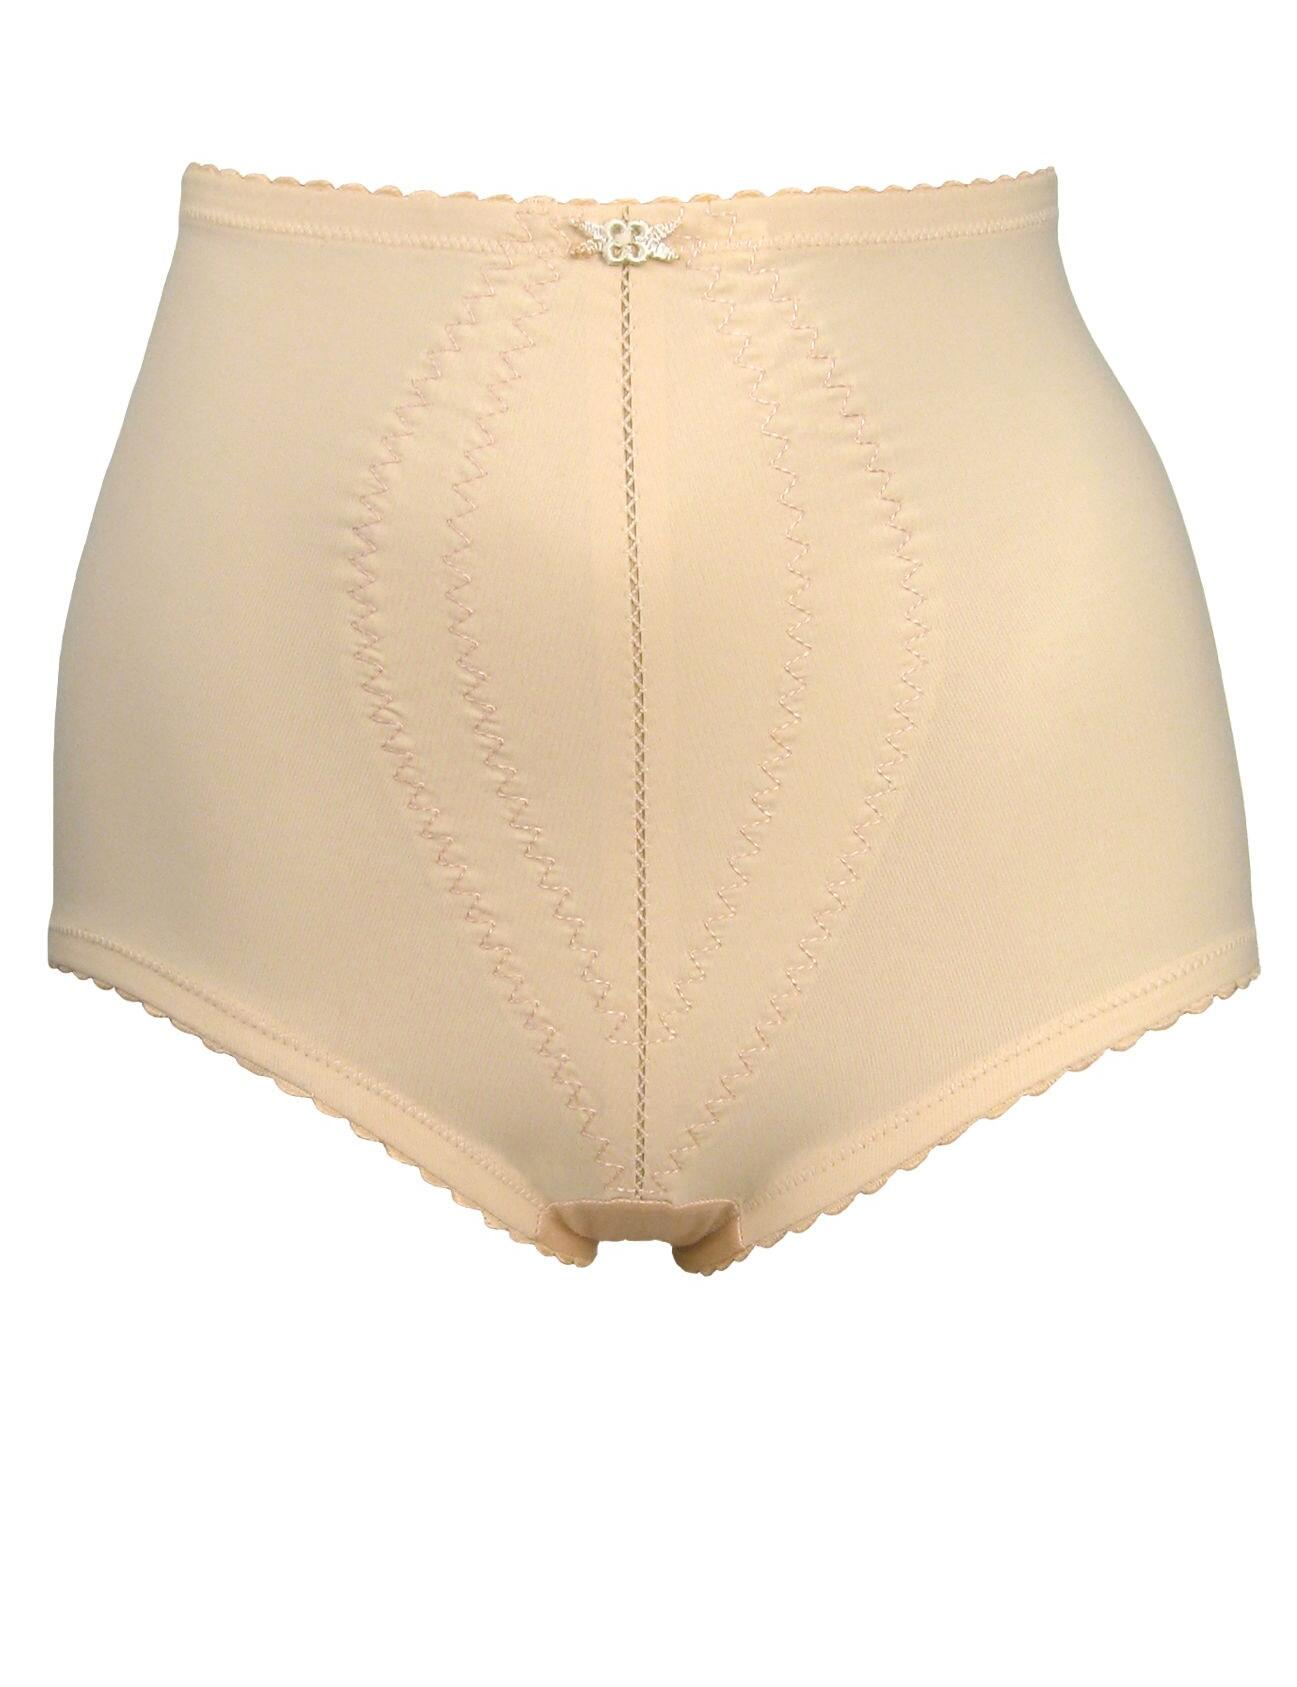 Playtex I Can't Believe it's a Girdle : Firm Control Brief P2522 - Beige